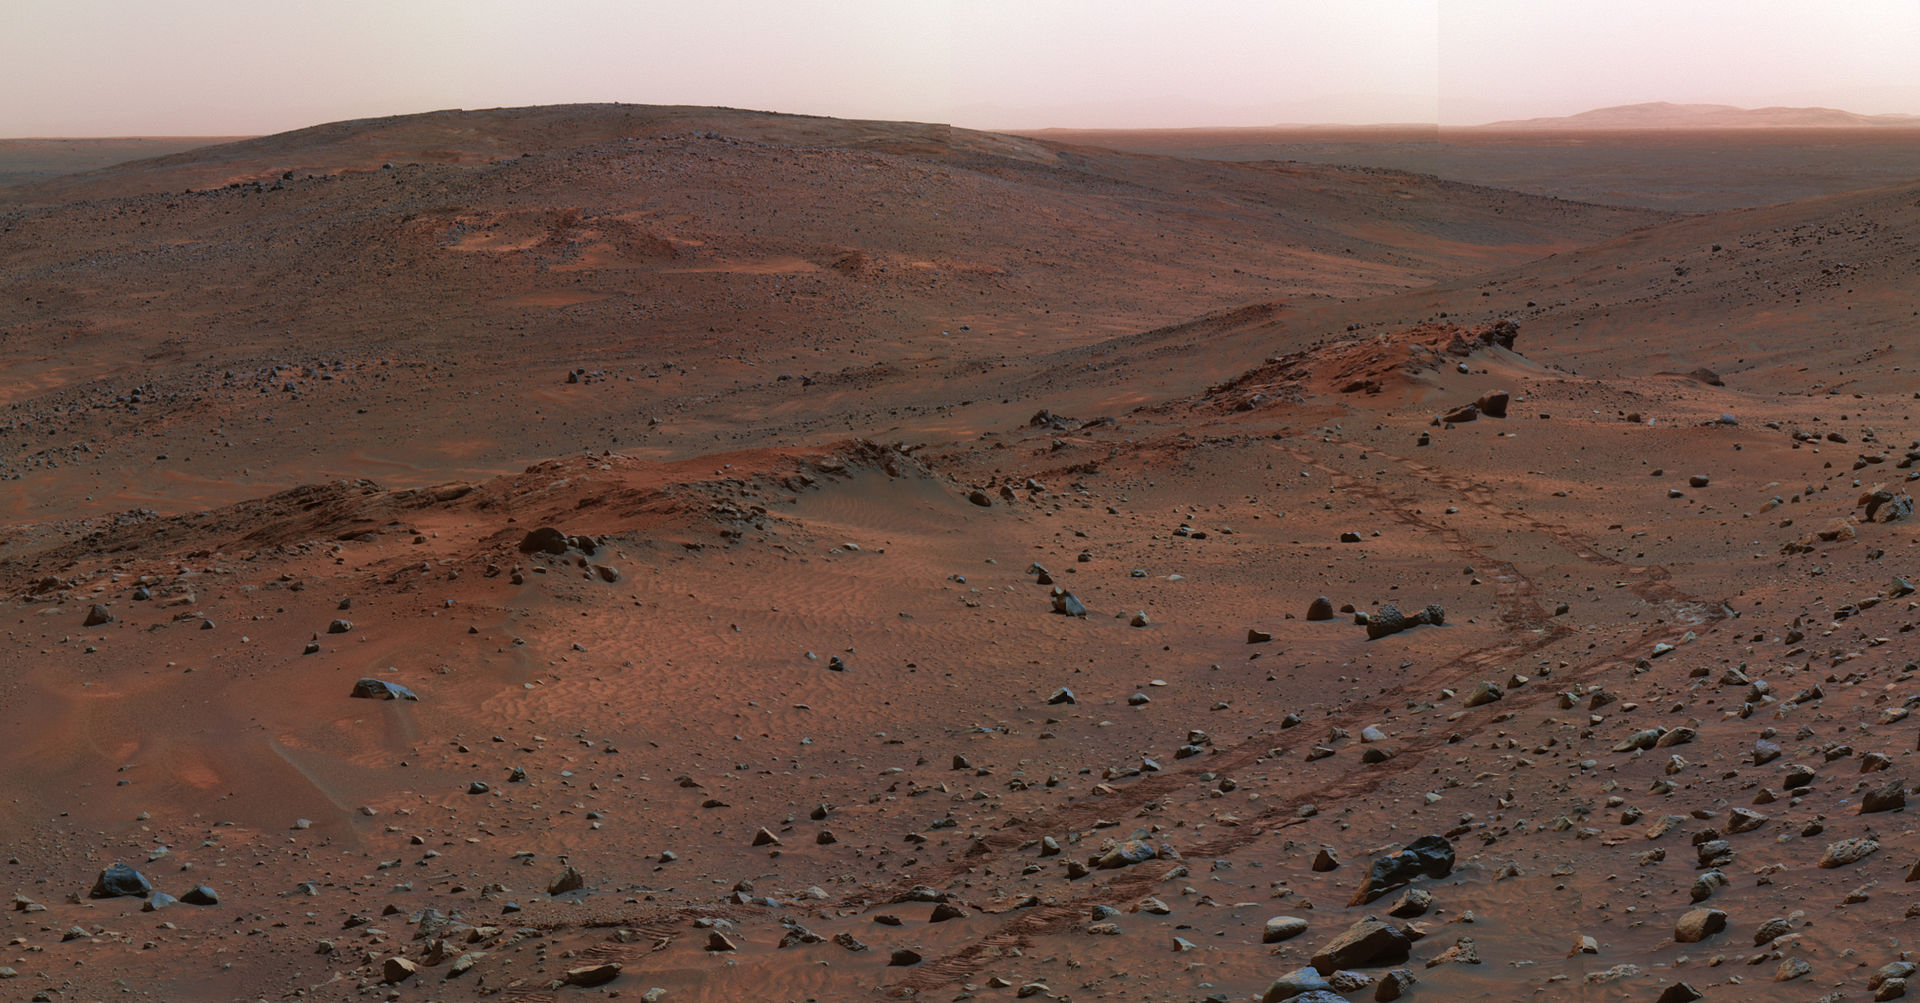 Panorama of the Gusev Crater on Mars